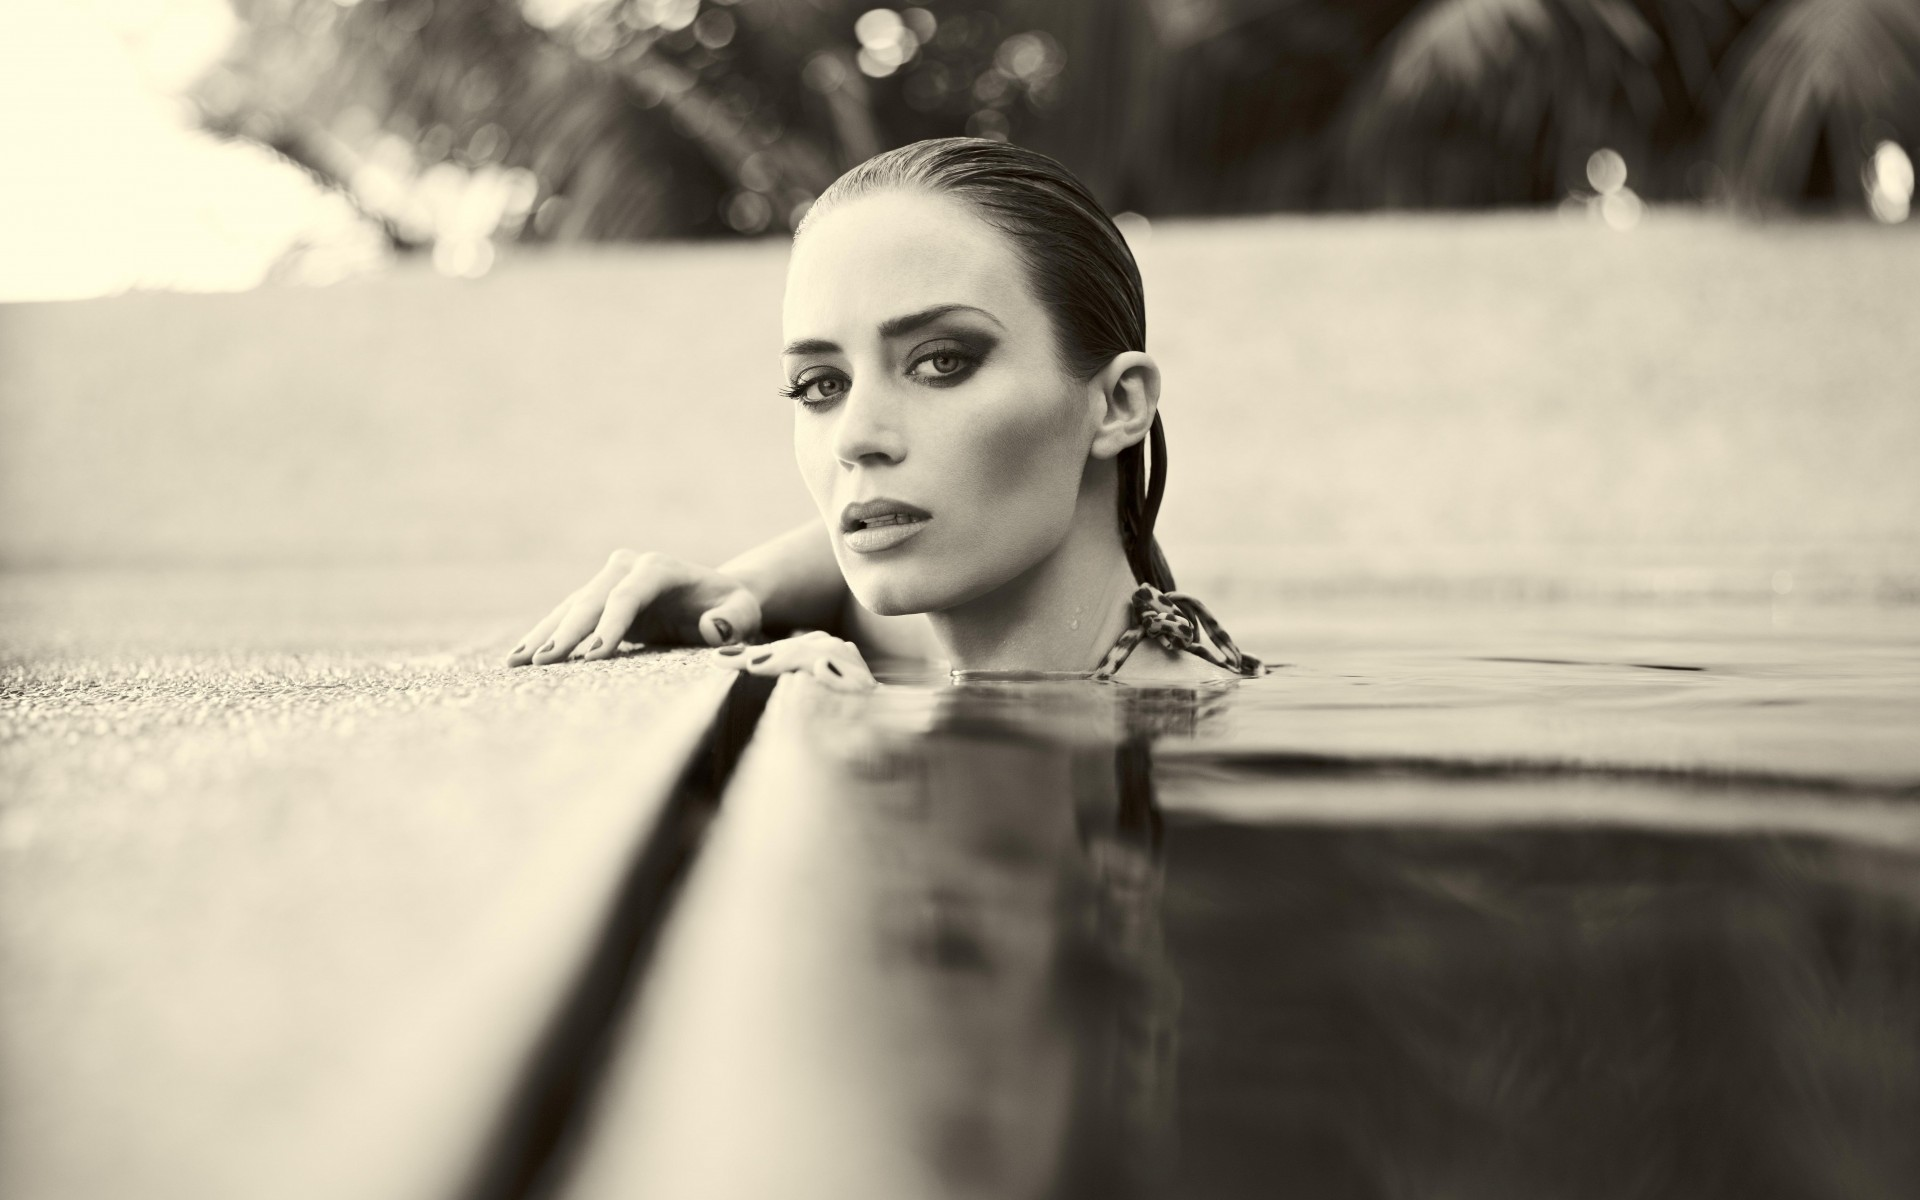 monochrome emily blunt pool wallpaper 63342